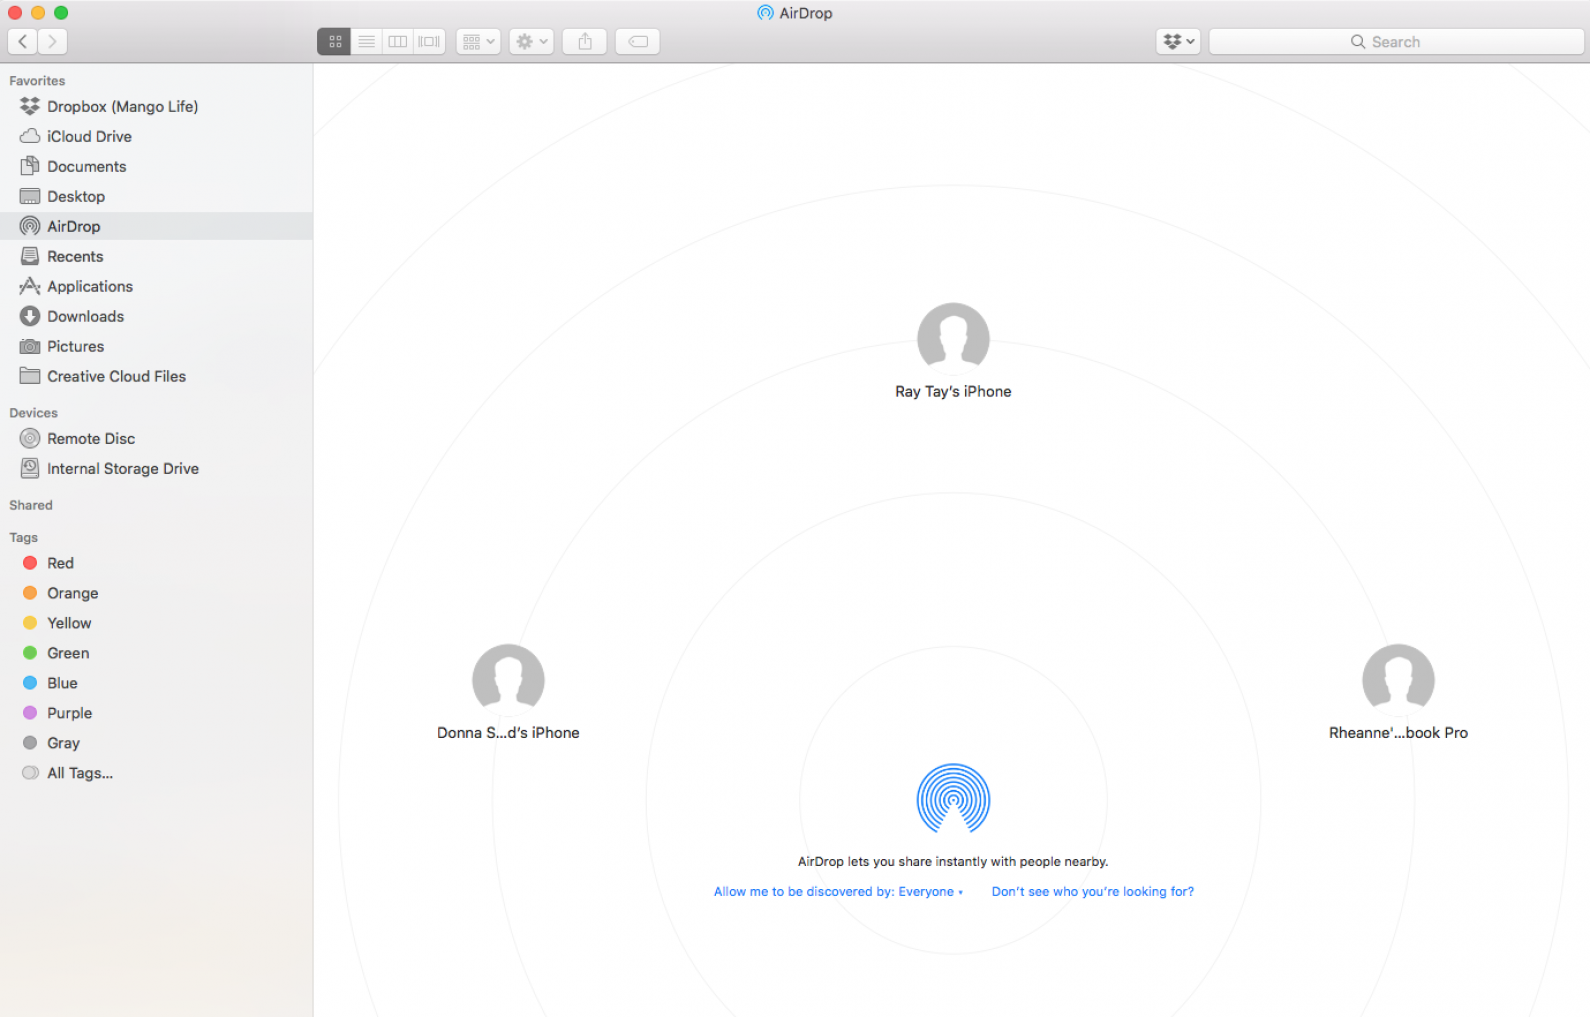 AirDrop: What It Is & How to Turn It On to Share Files & Photos on